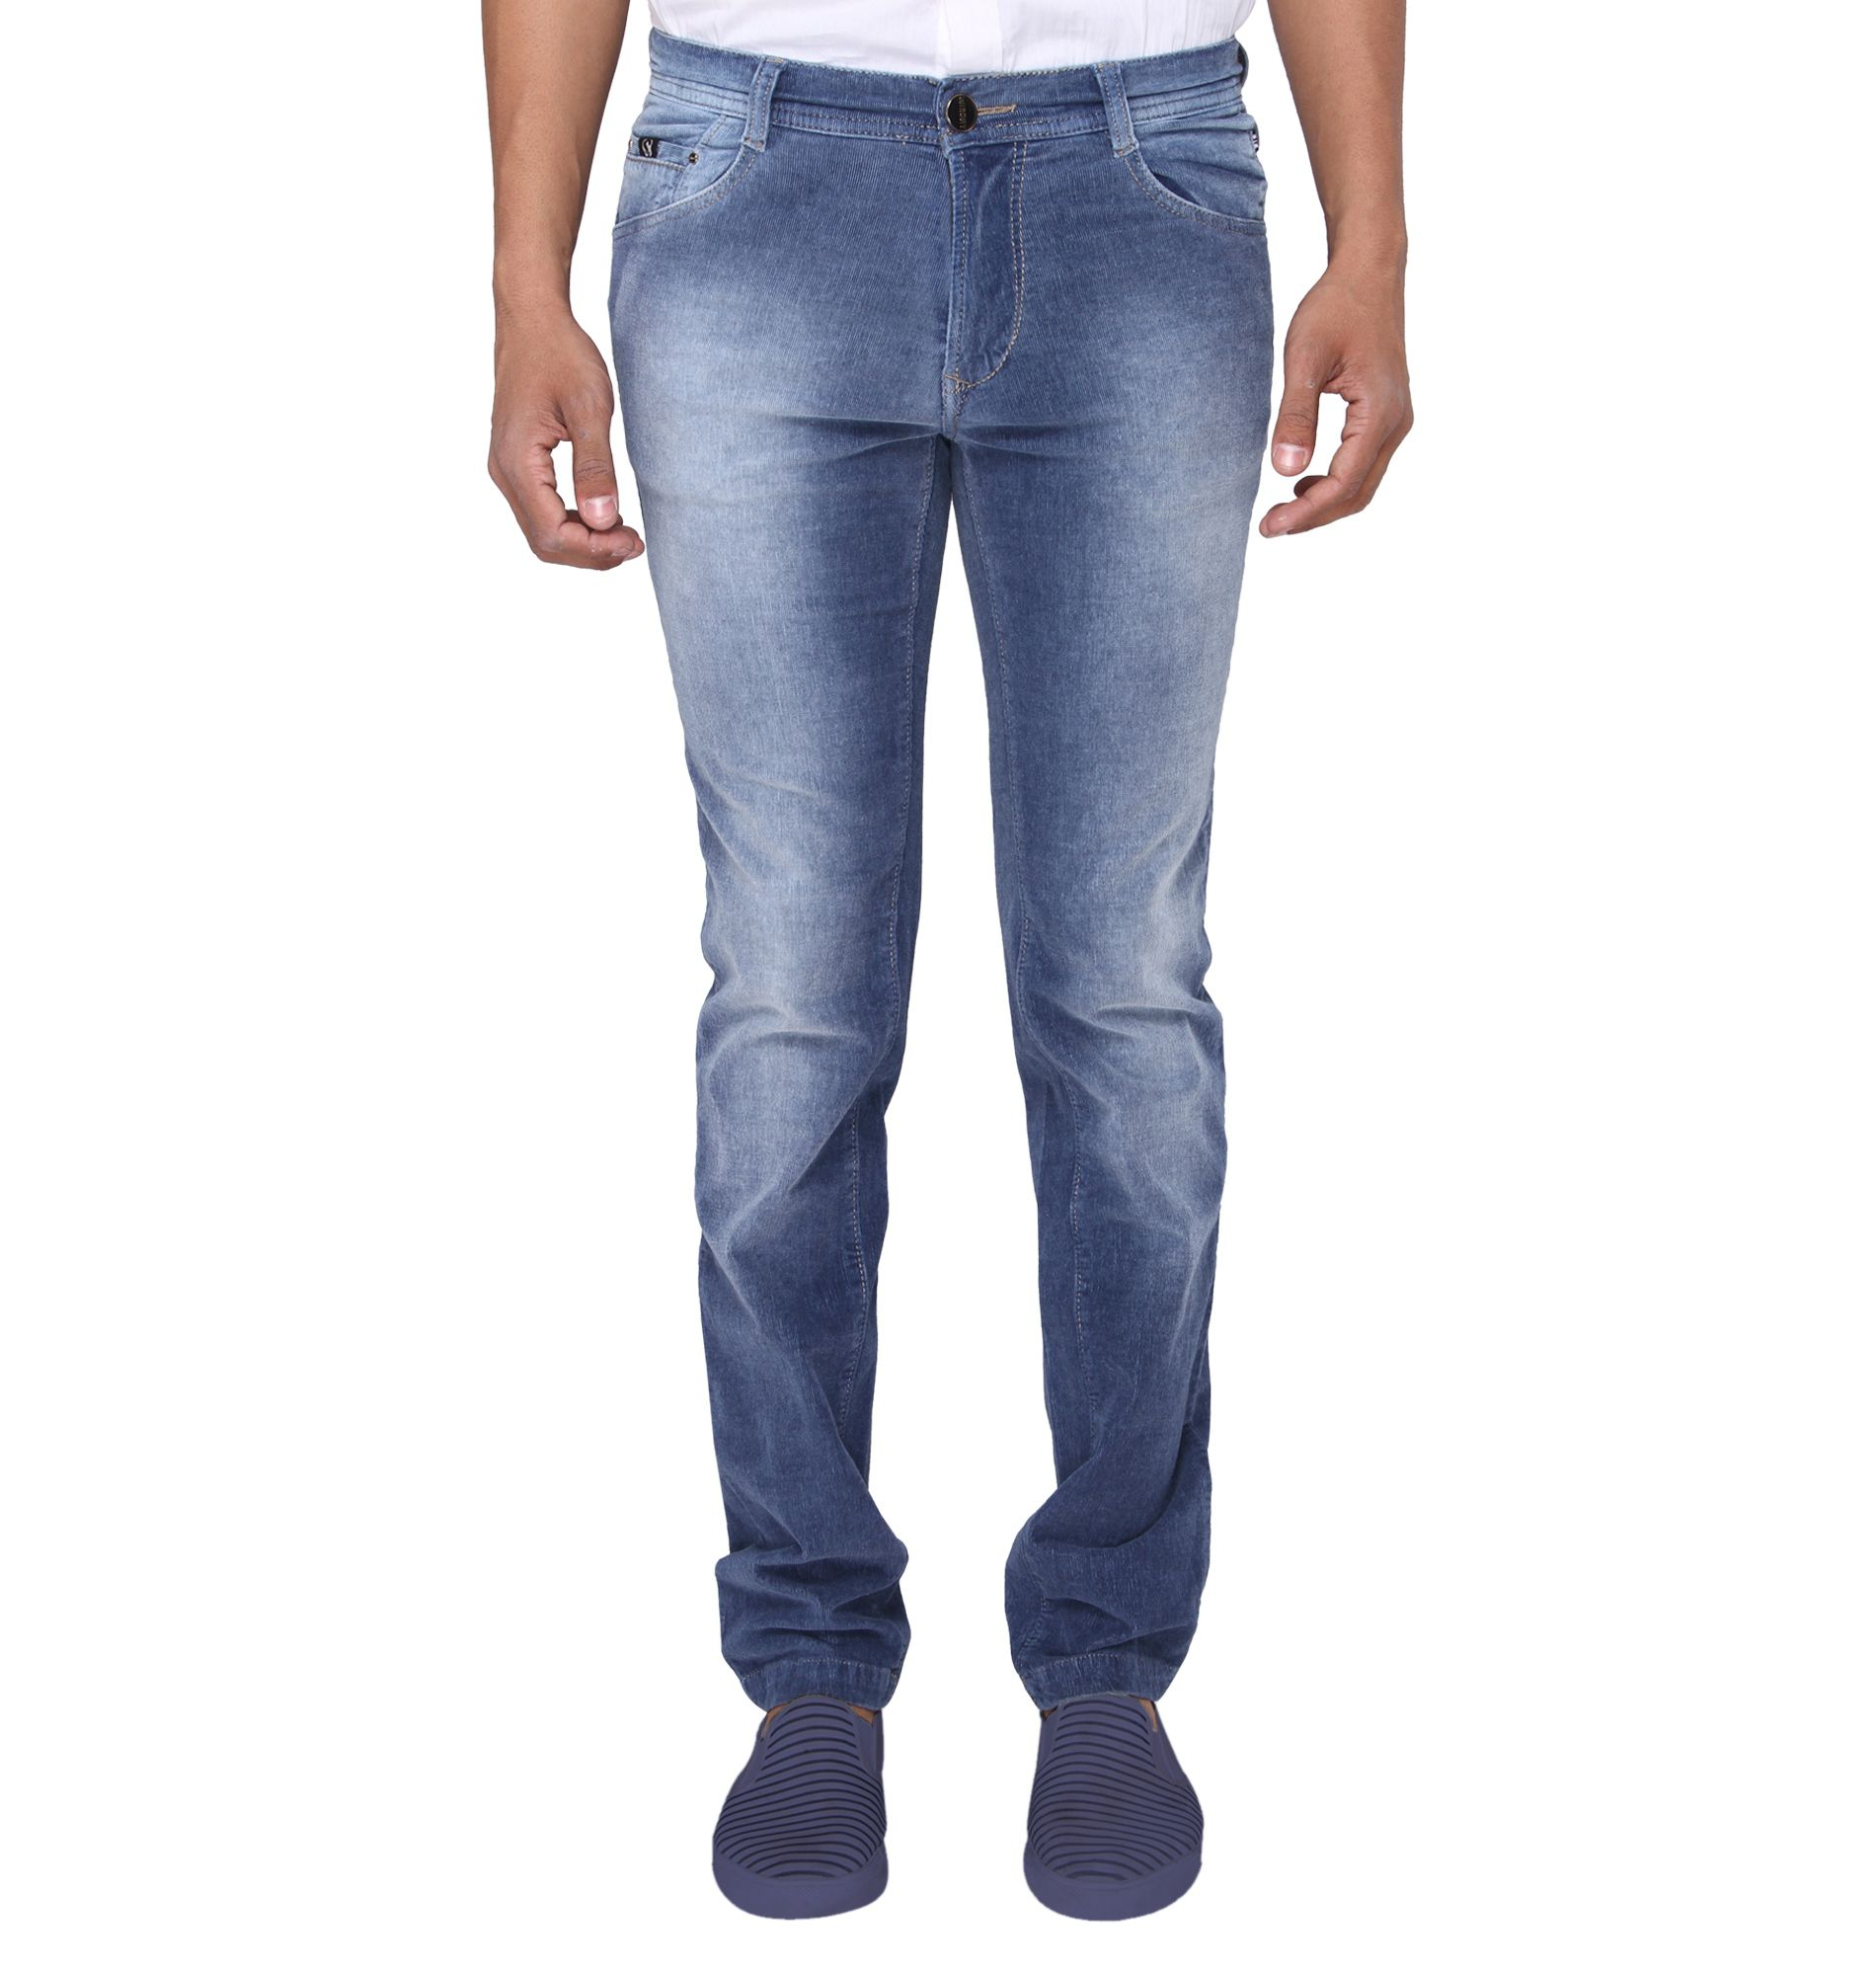 Irony Blue Regular Fit Jeans